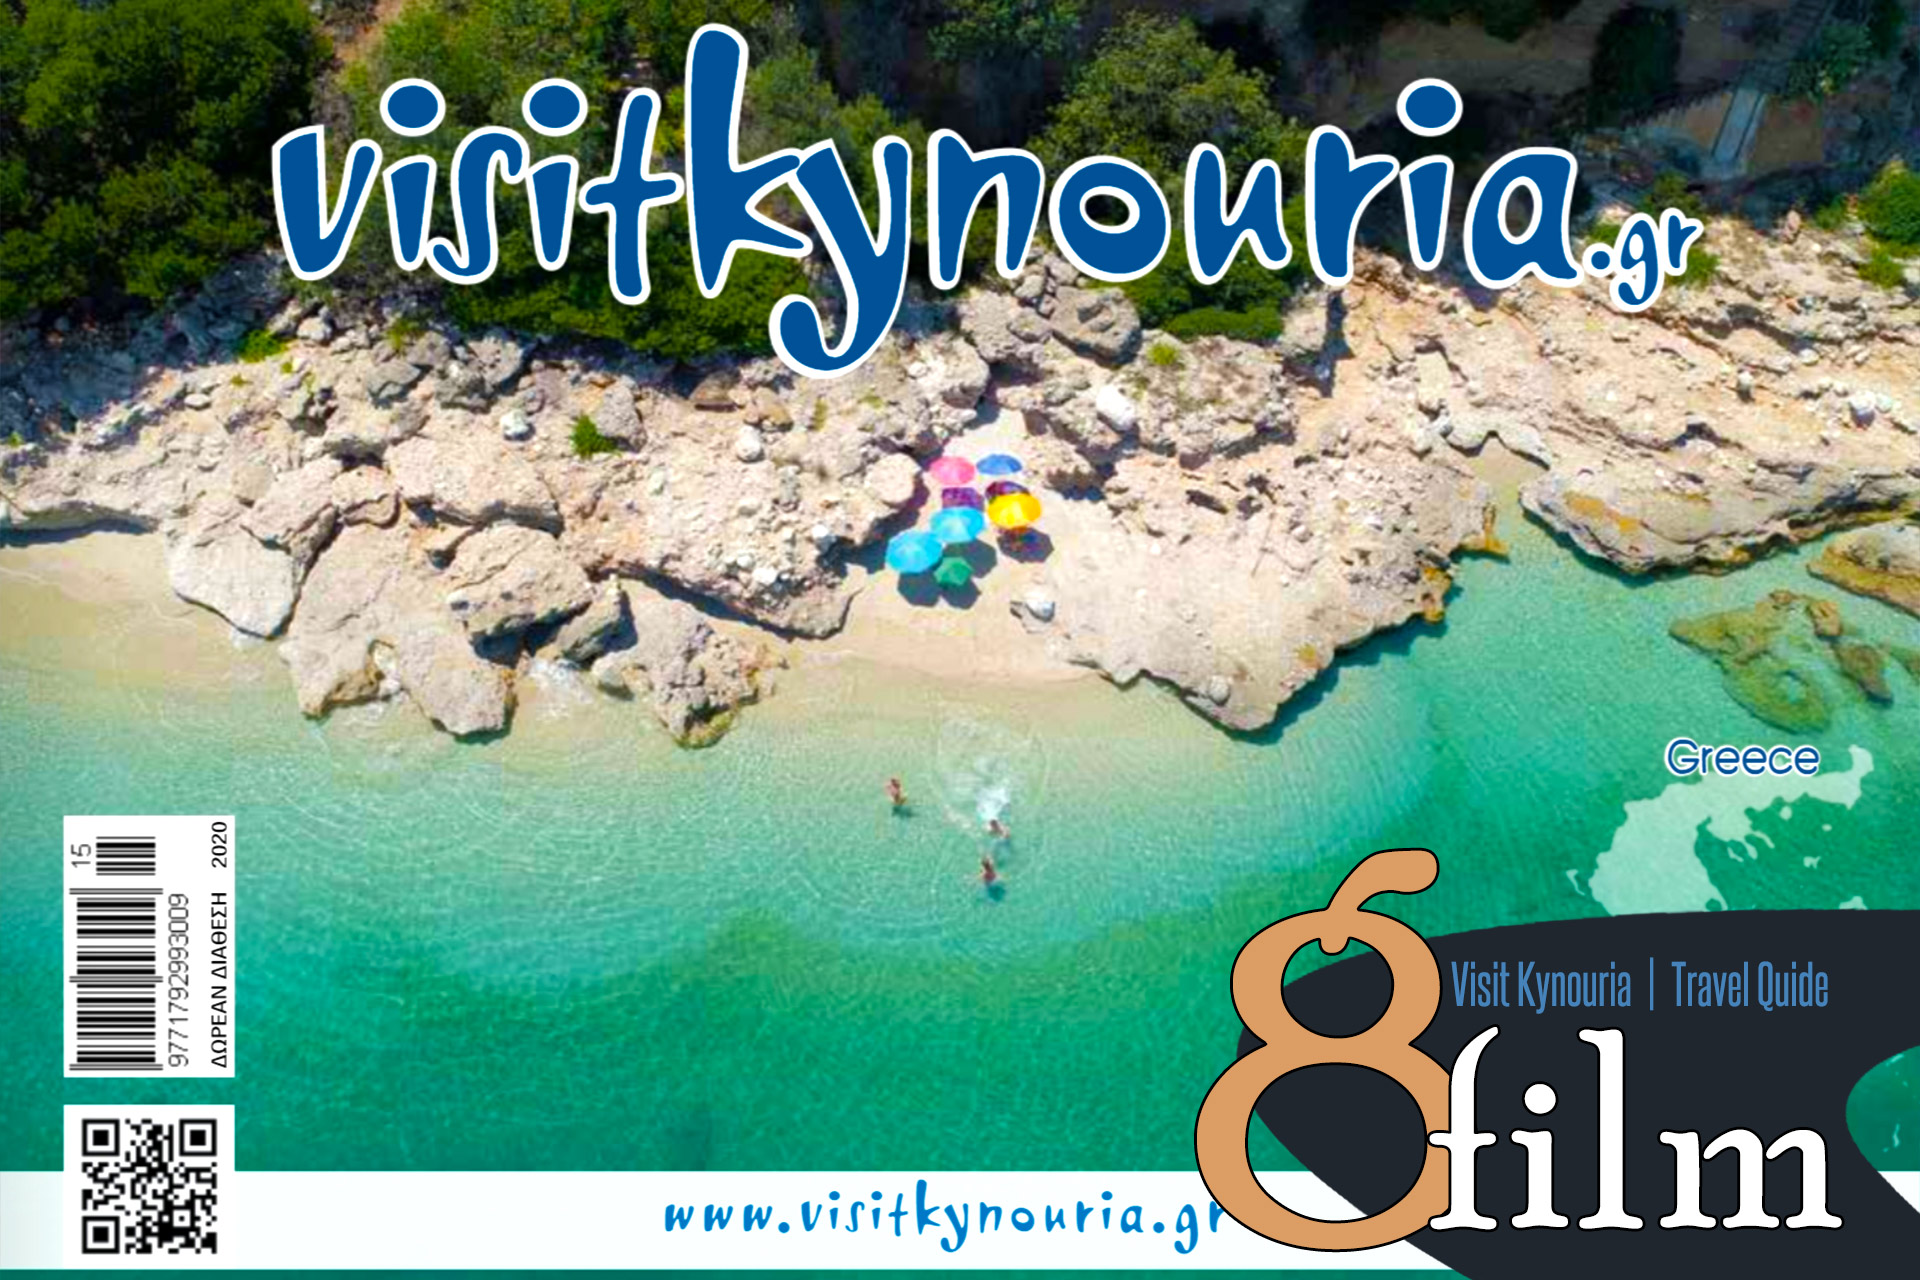 Visit Kynouria Travel Guide Chris Giatrakos